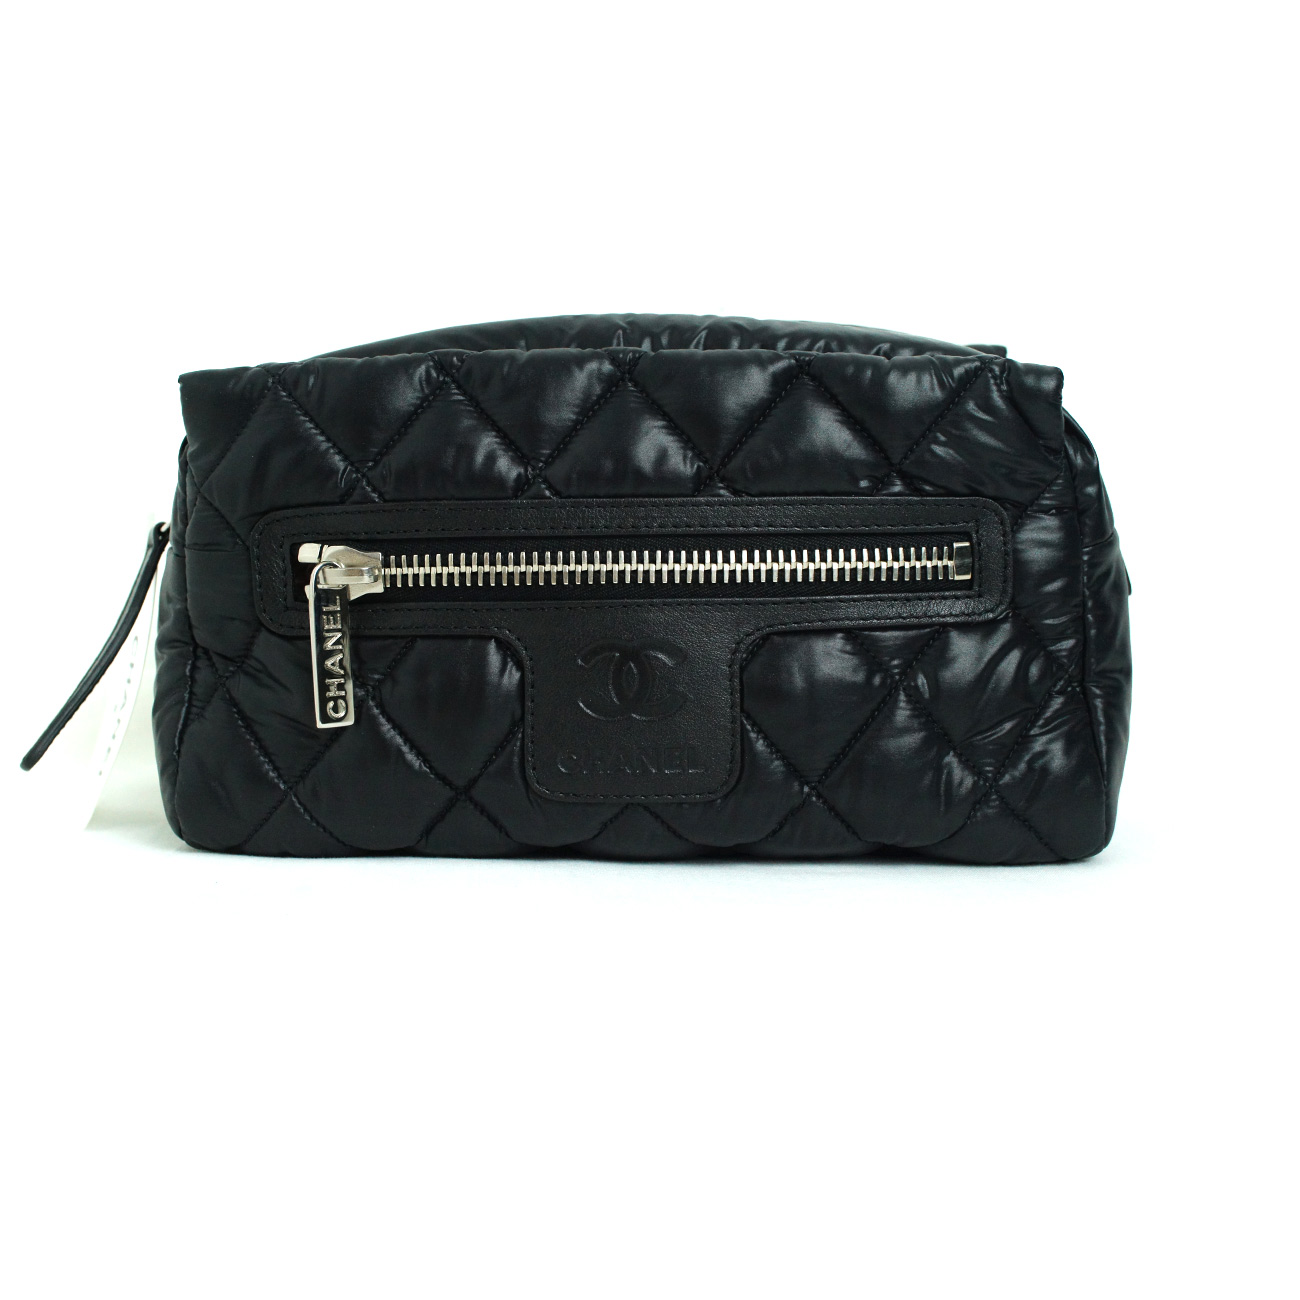 57293d12b Women's :: Small Fashion Goods :: Make-up Bags :: [CHANEL] COCO Cocoon  Black Travel Makeup Pouch / 100% Authentic / New